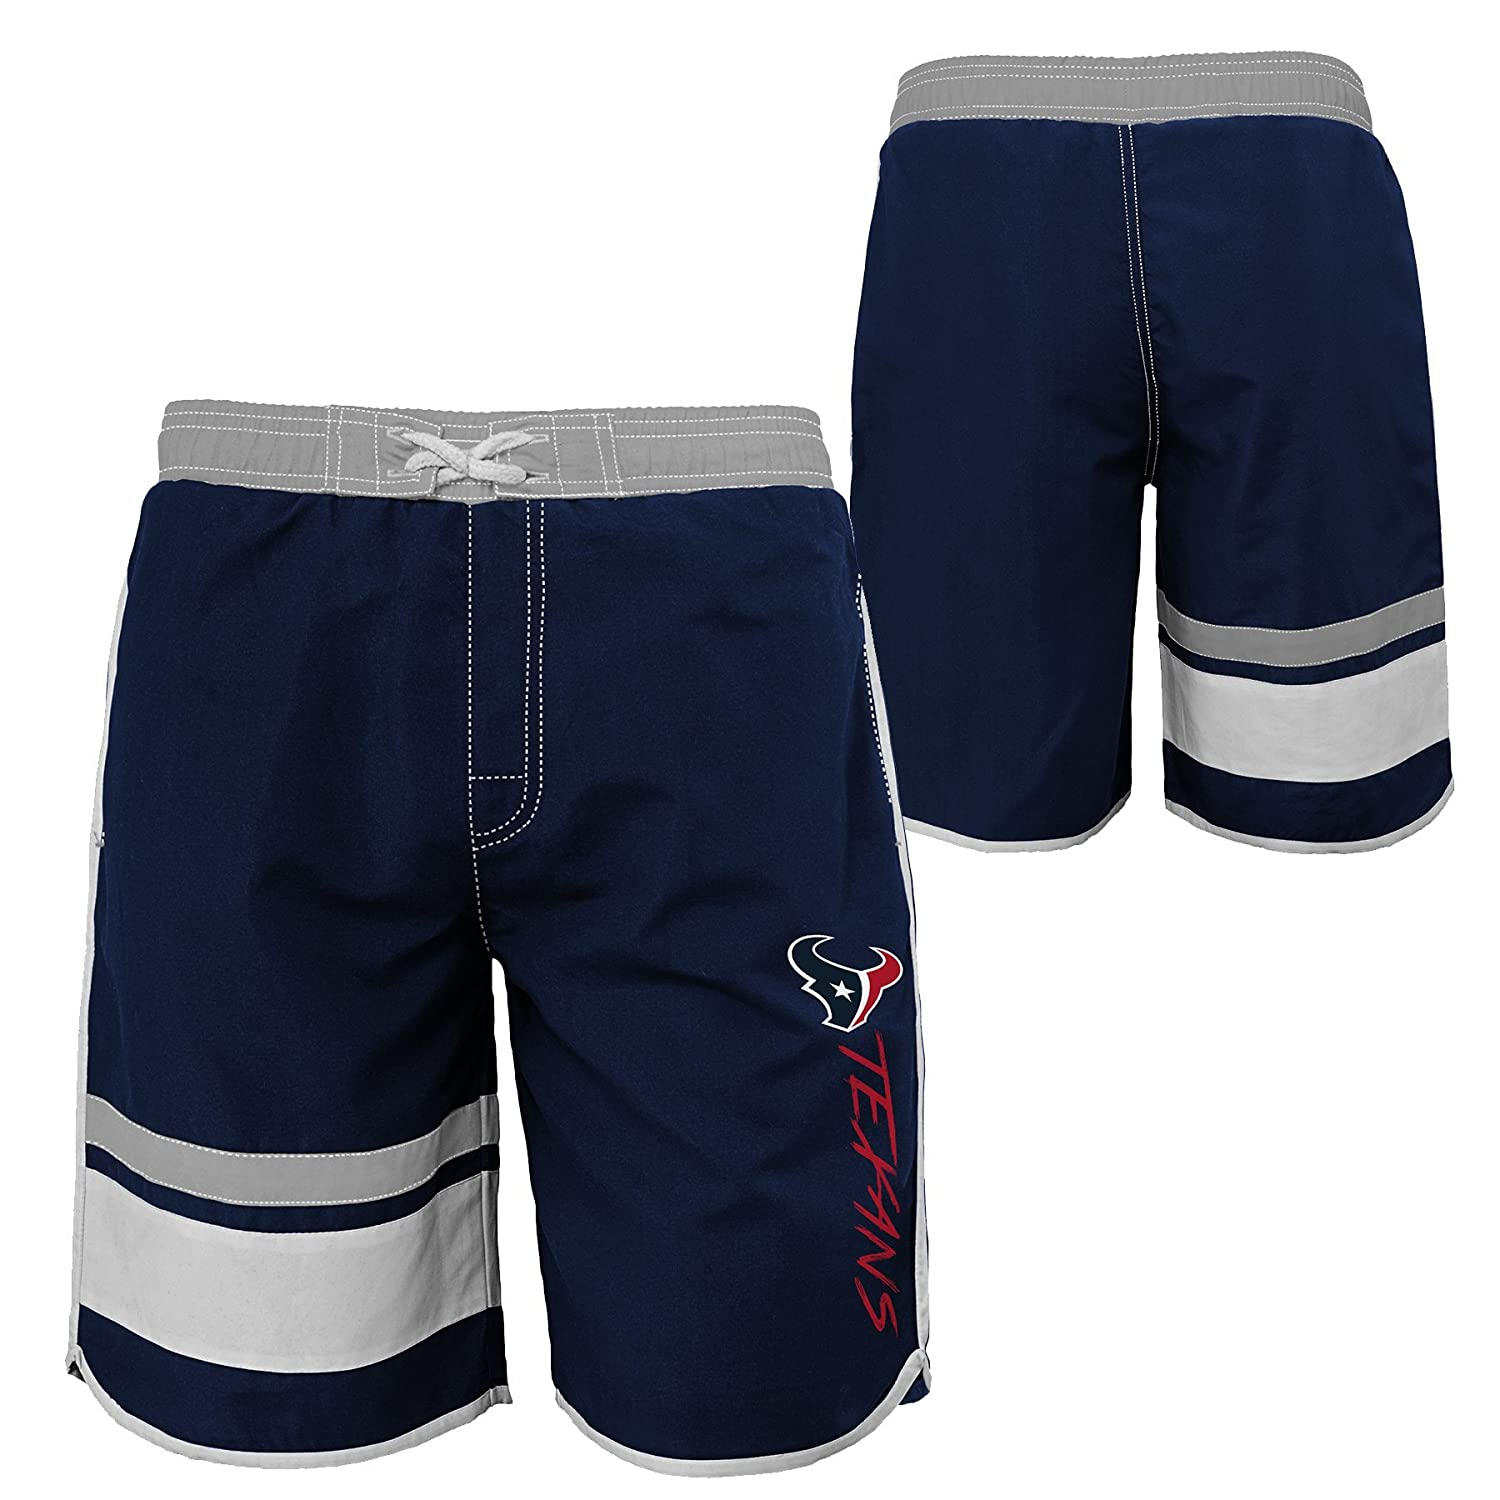 NFL Houston Texans Youth 8-20 Swim Trunk 14-16 Dark Navy Large